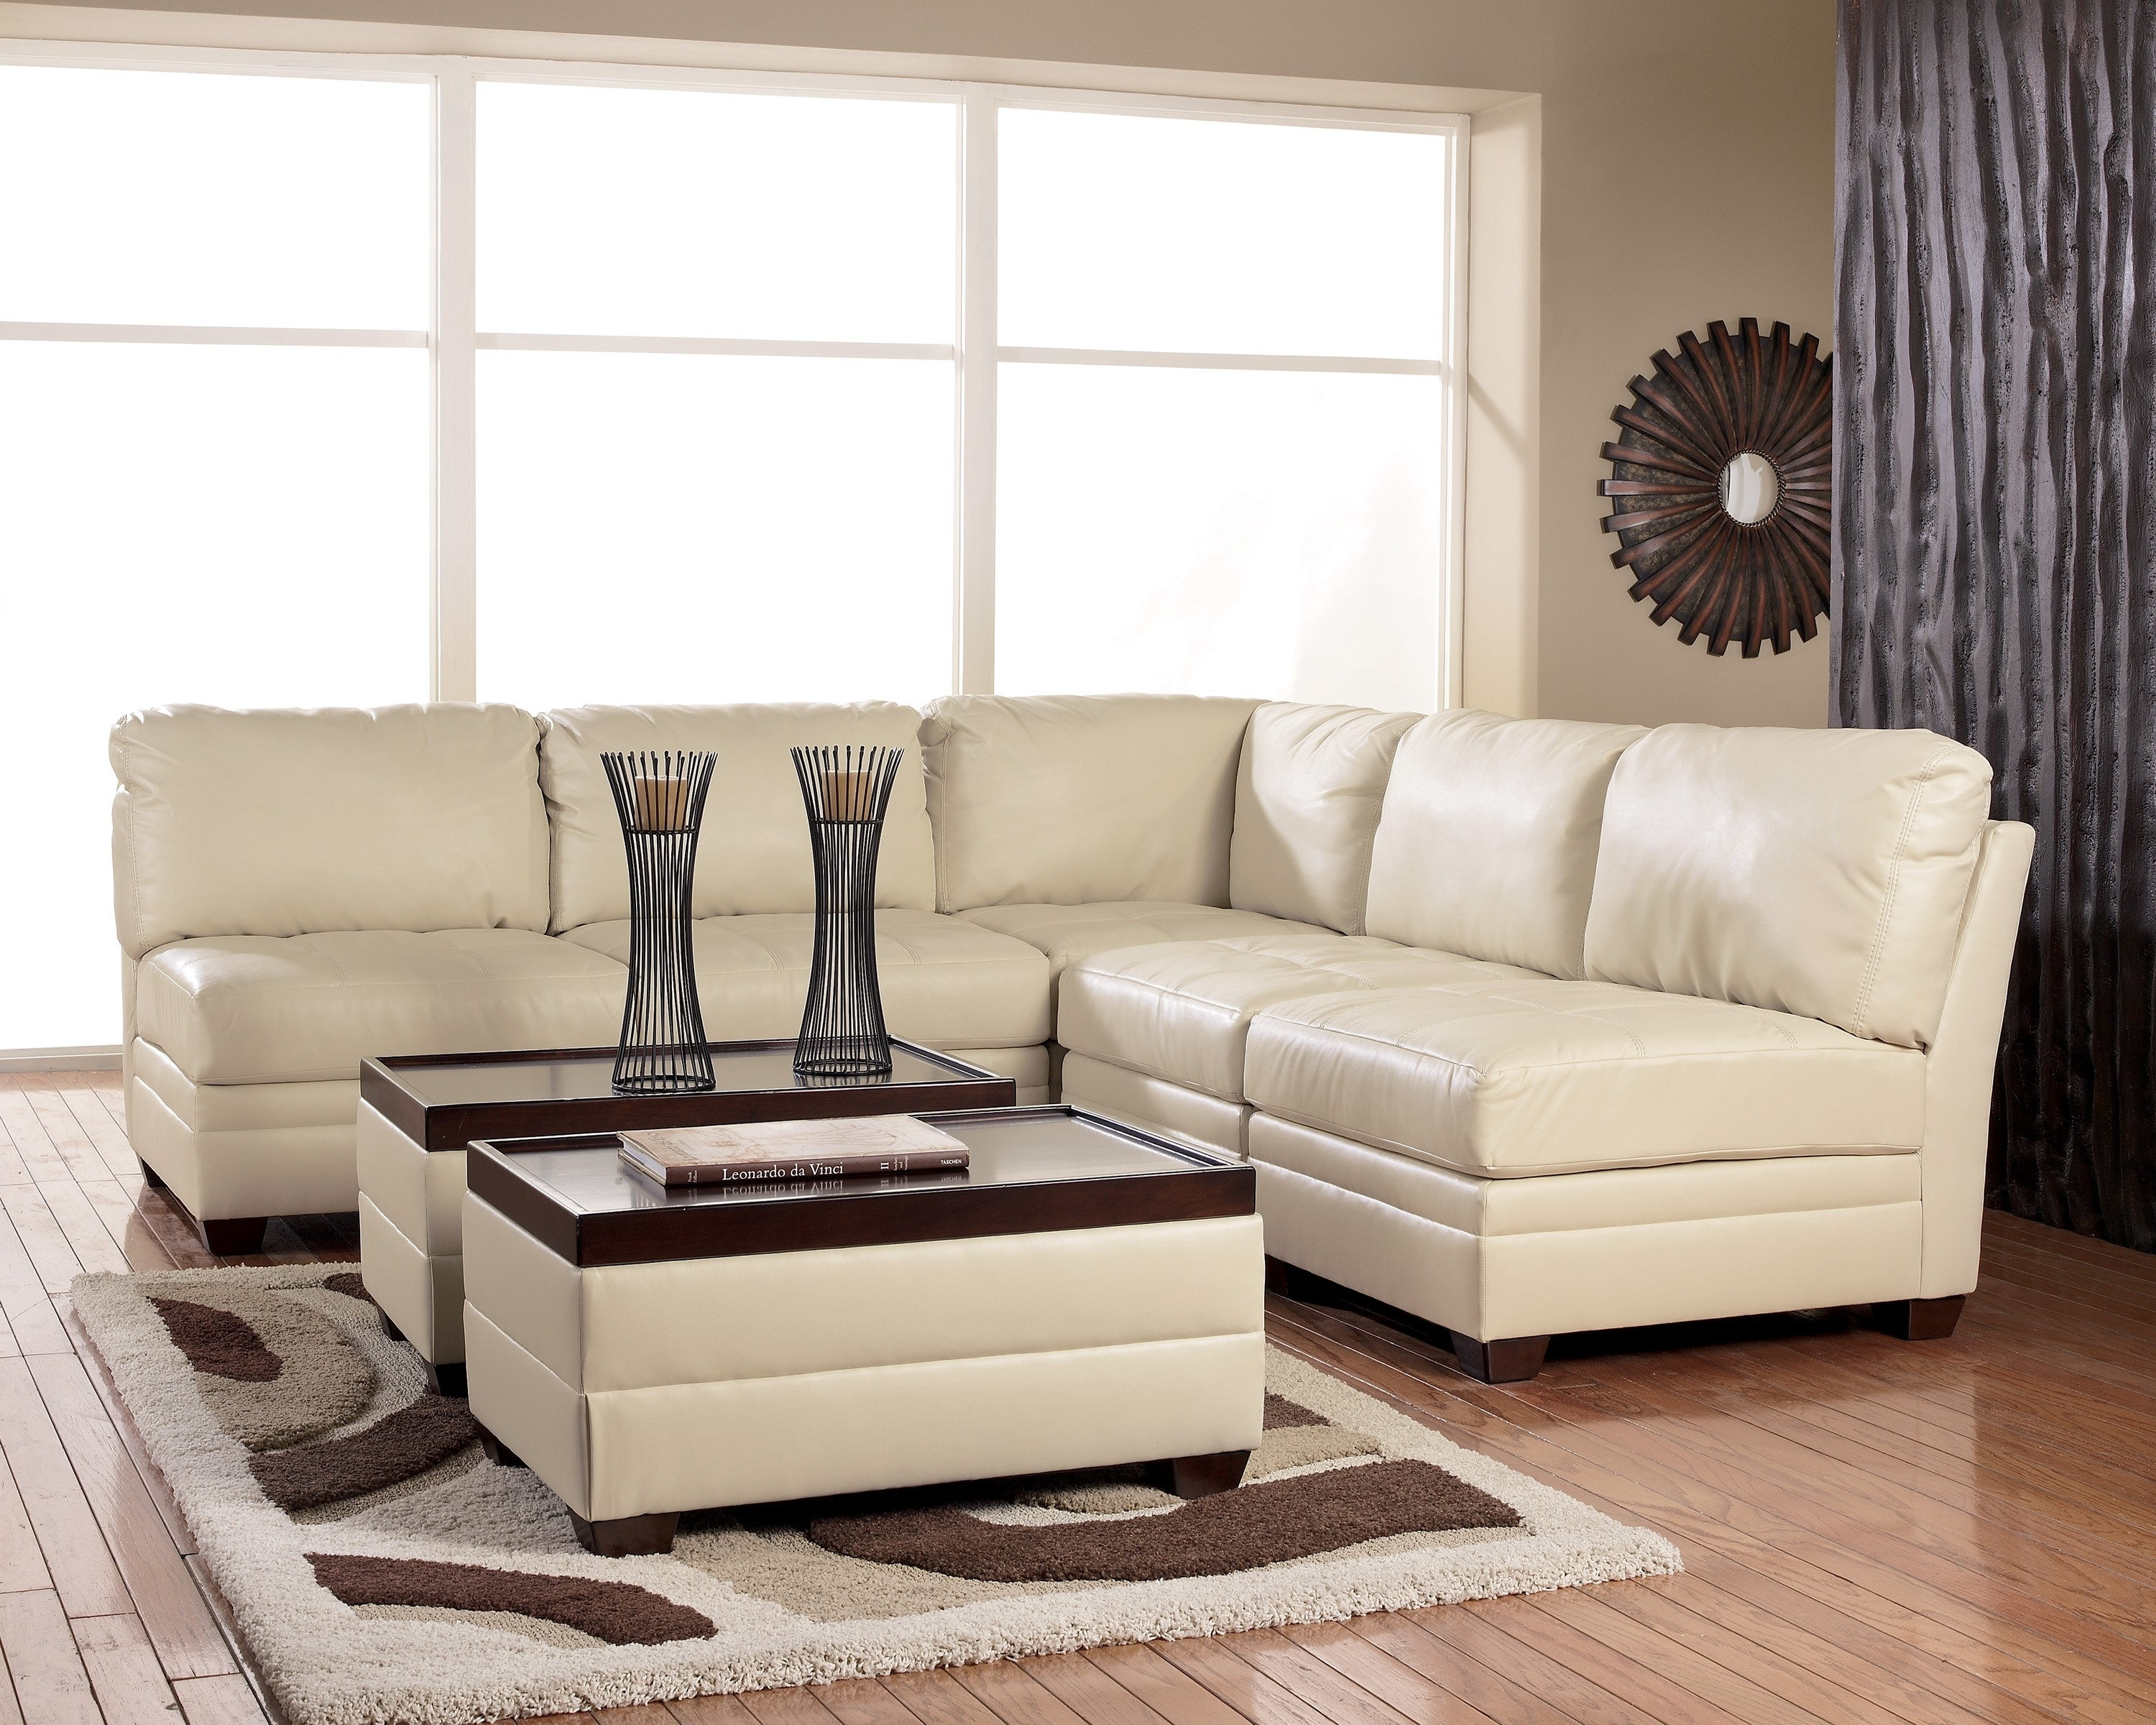 Sofa Ideas: Sectional Sofas at Ashley Furniture (Explore #2 of 10 ...